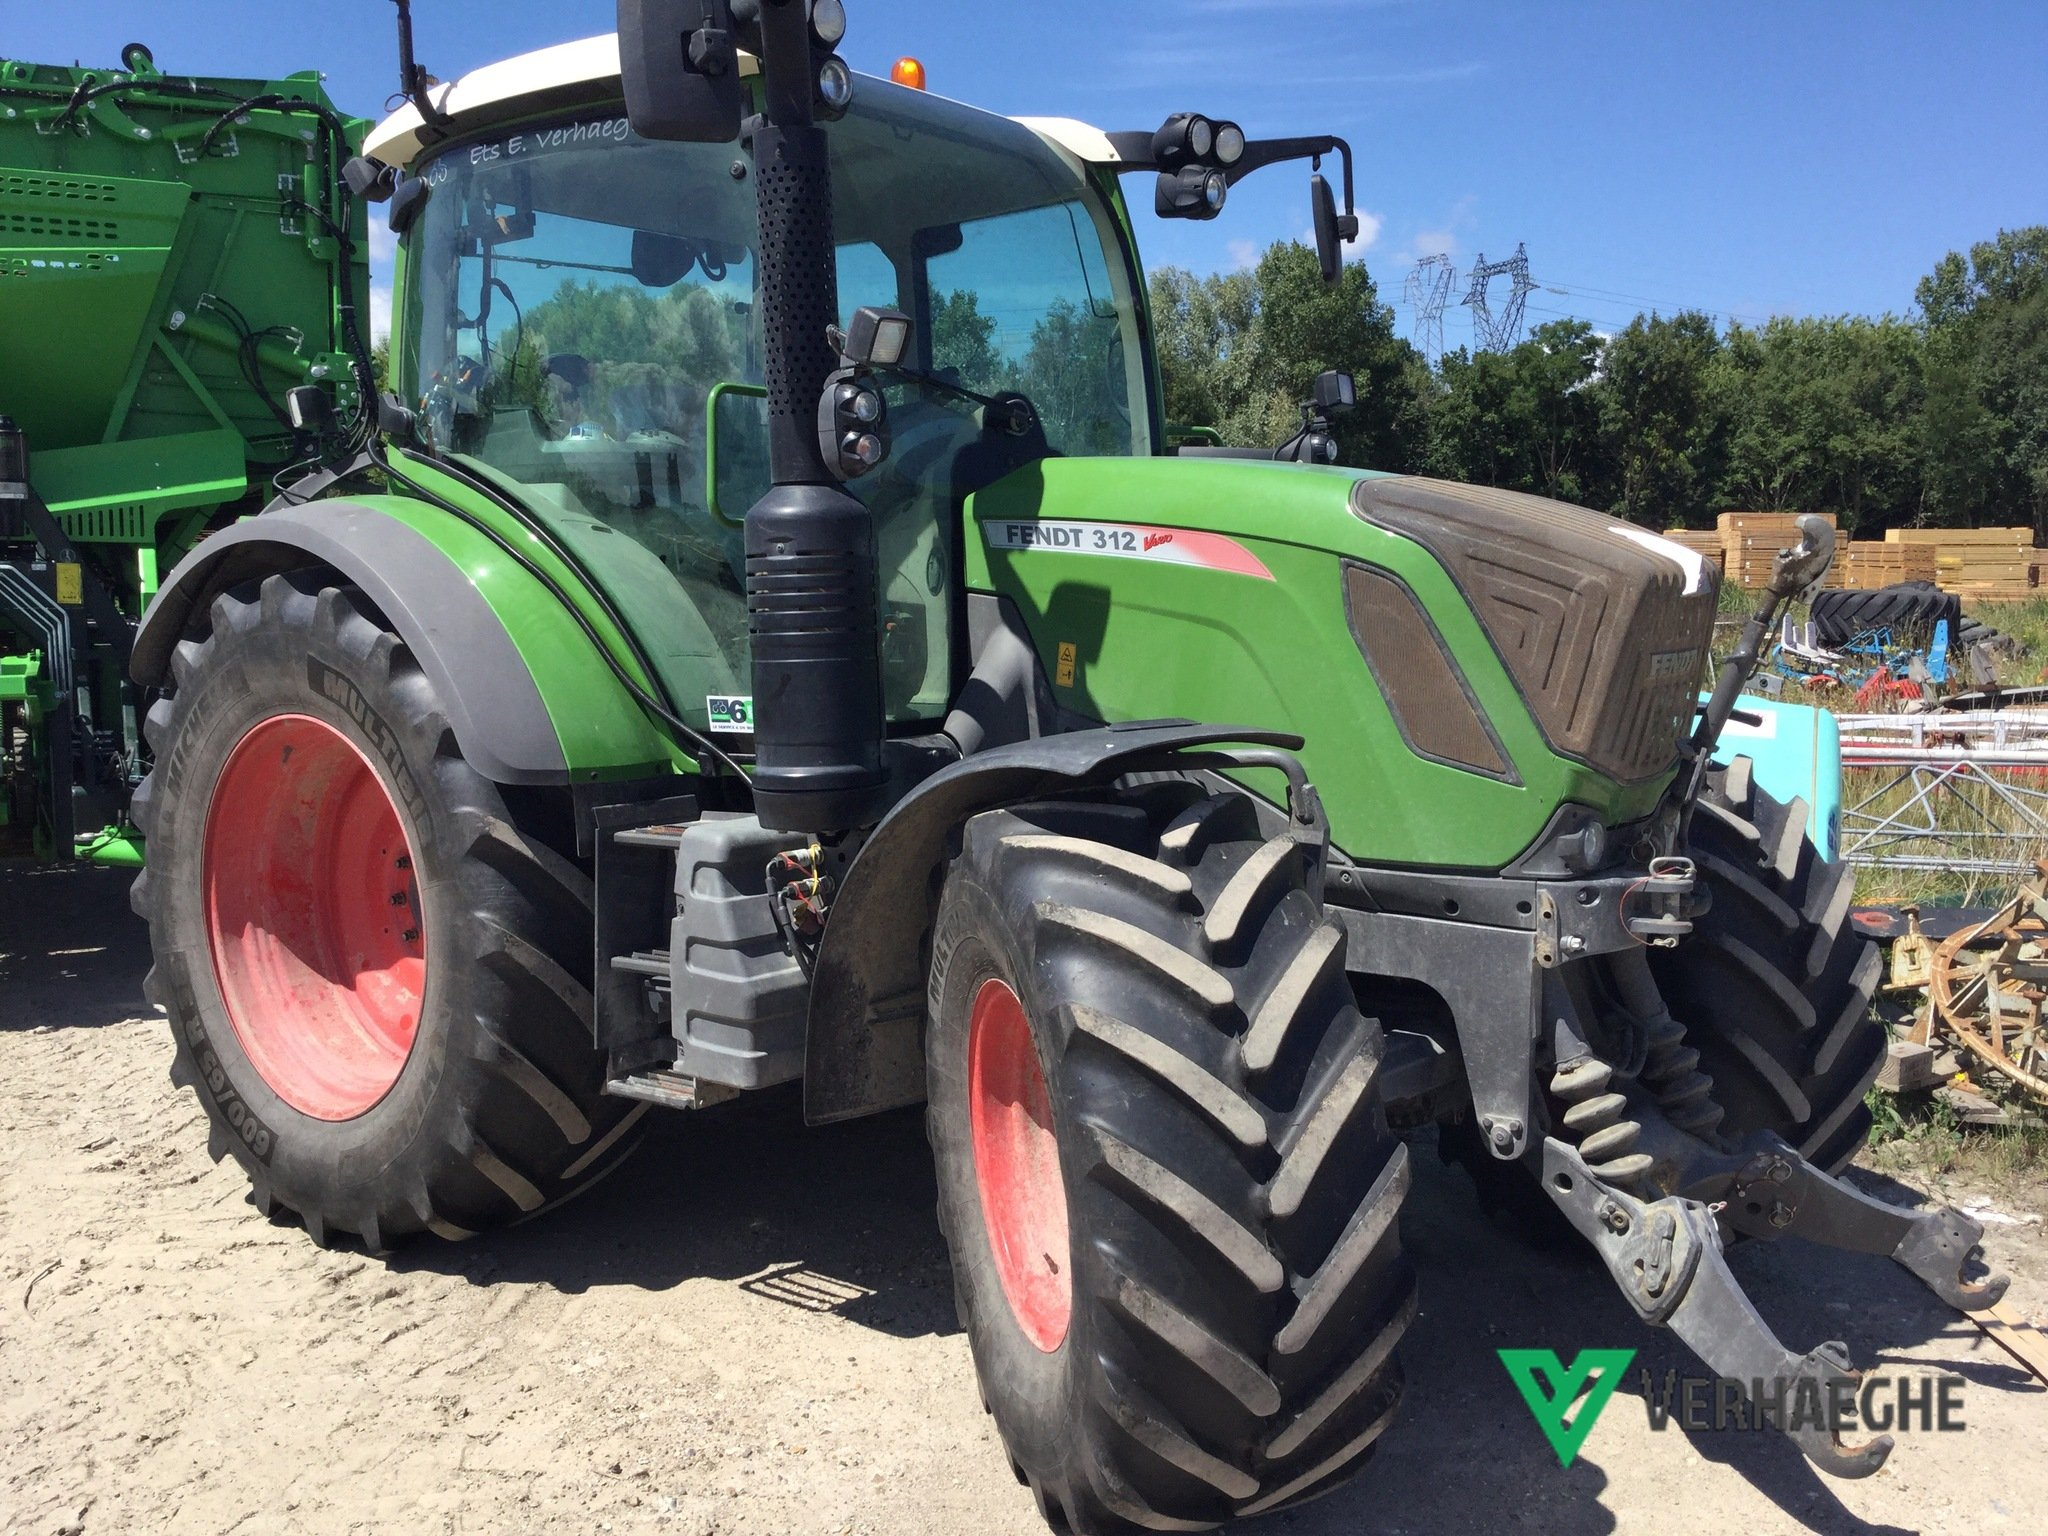 Tracteur agricole Fendt 312 S4 POWER - 1